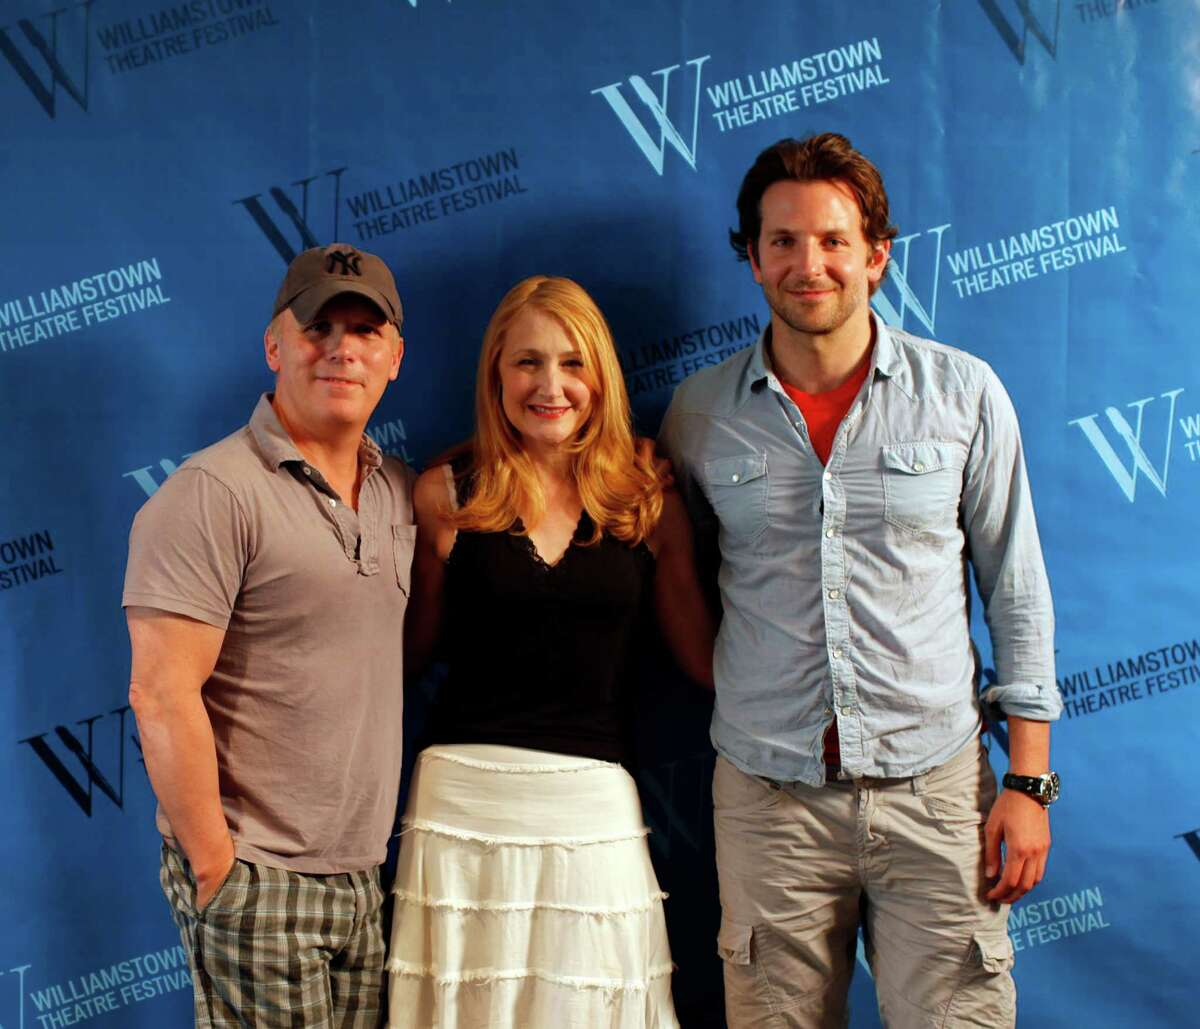 Director Scott Ellis, left, actress Patricia Clarkson, center, and actor Bradley Cooper, right, pose for photos during a press availability for